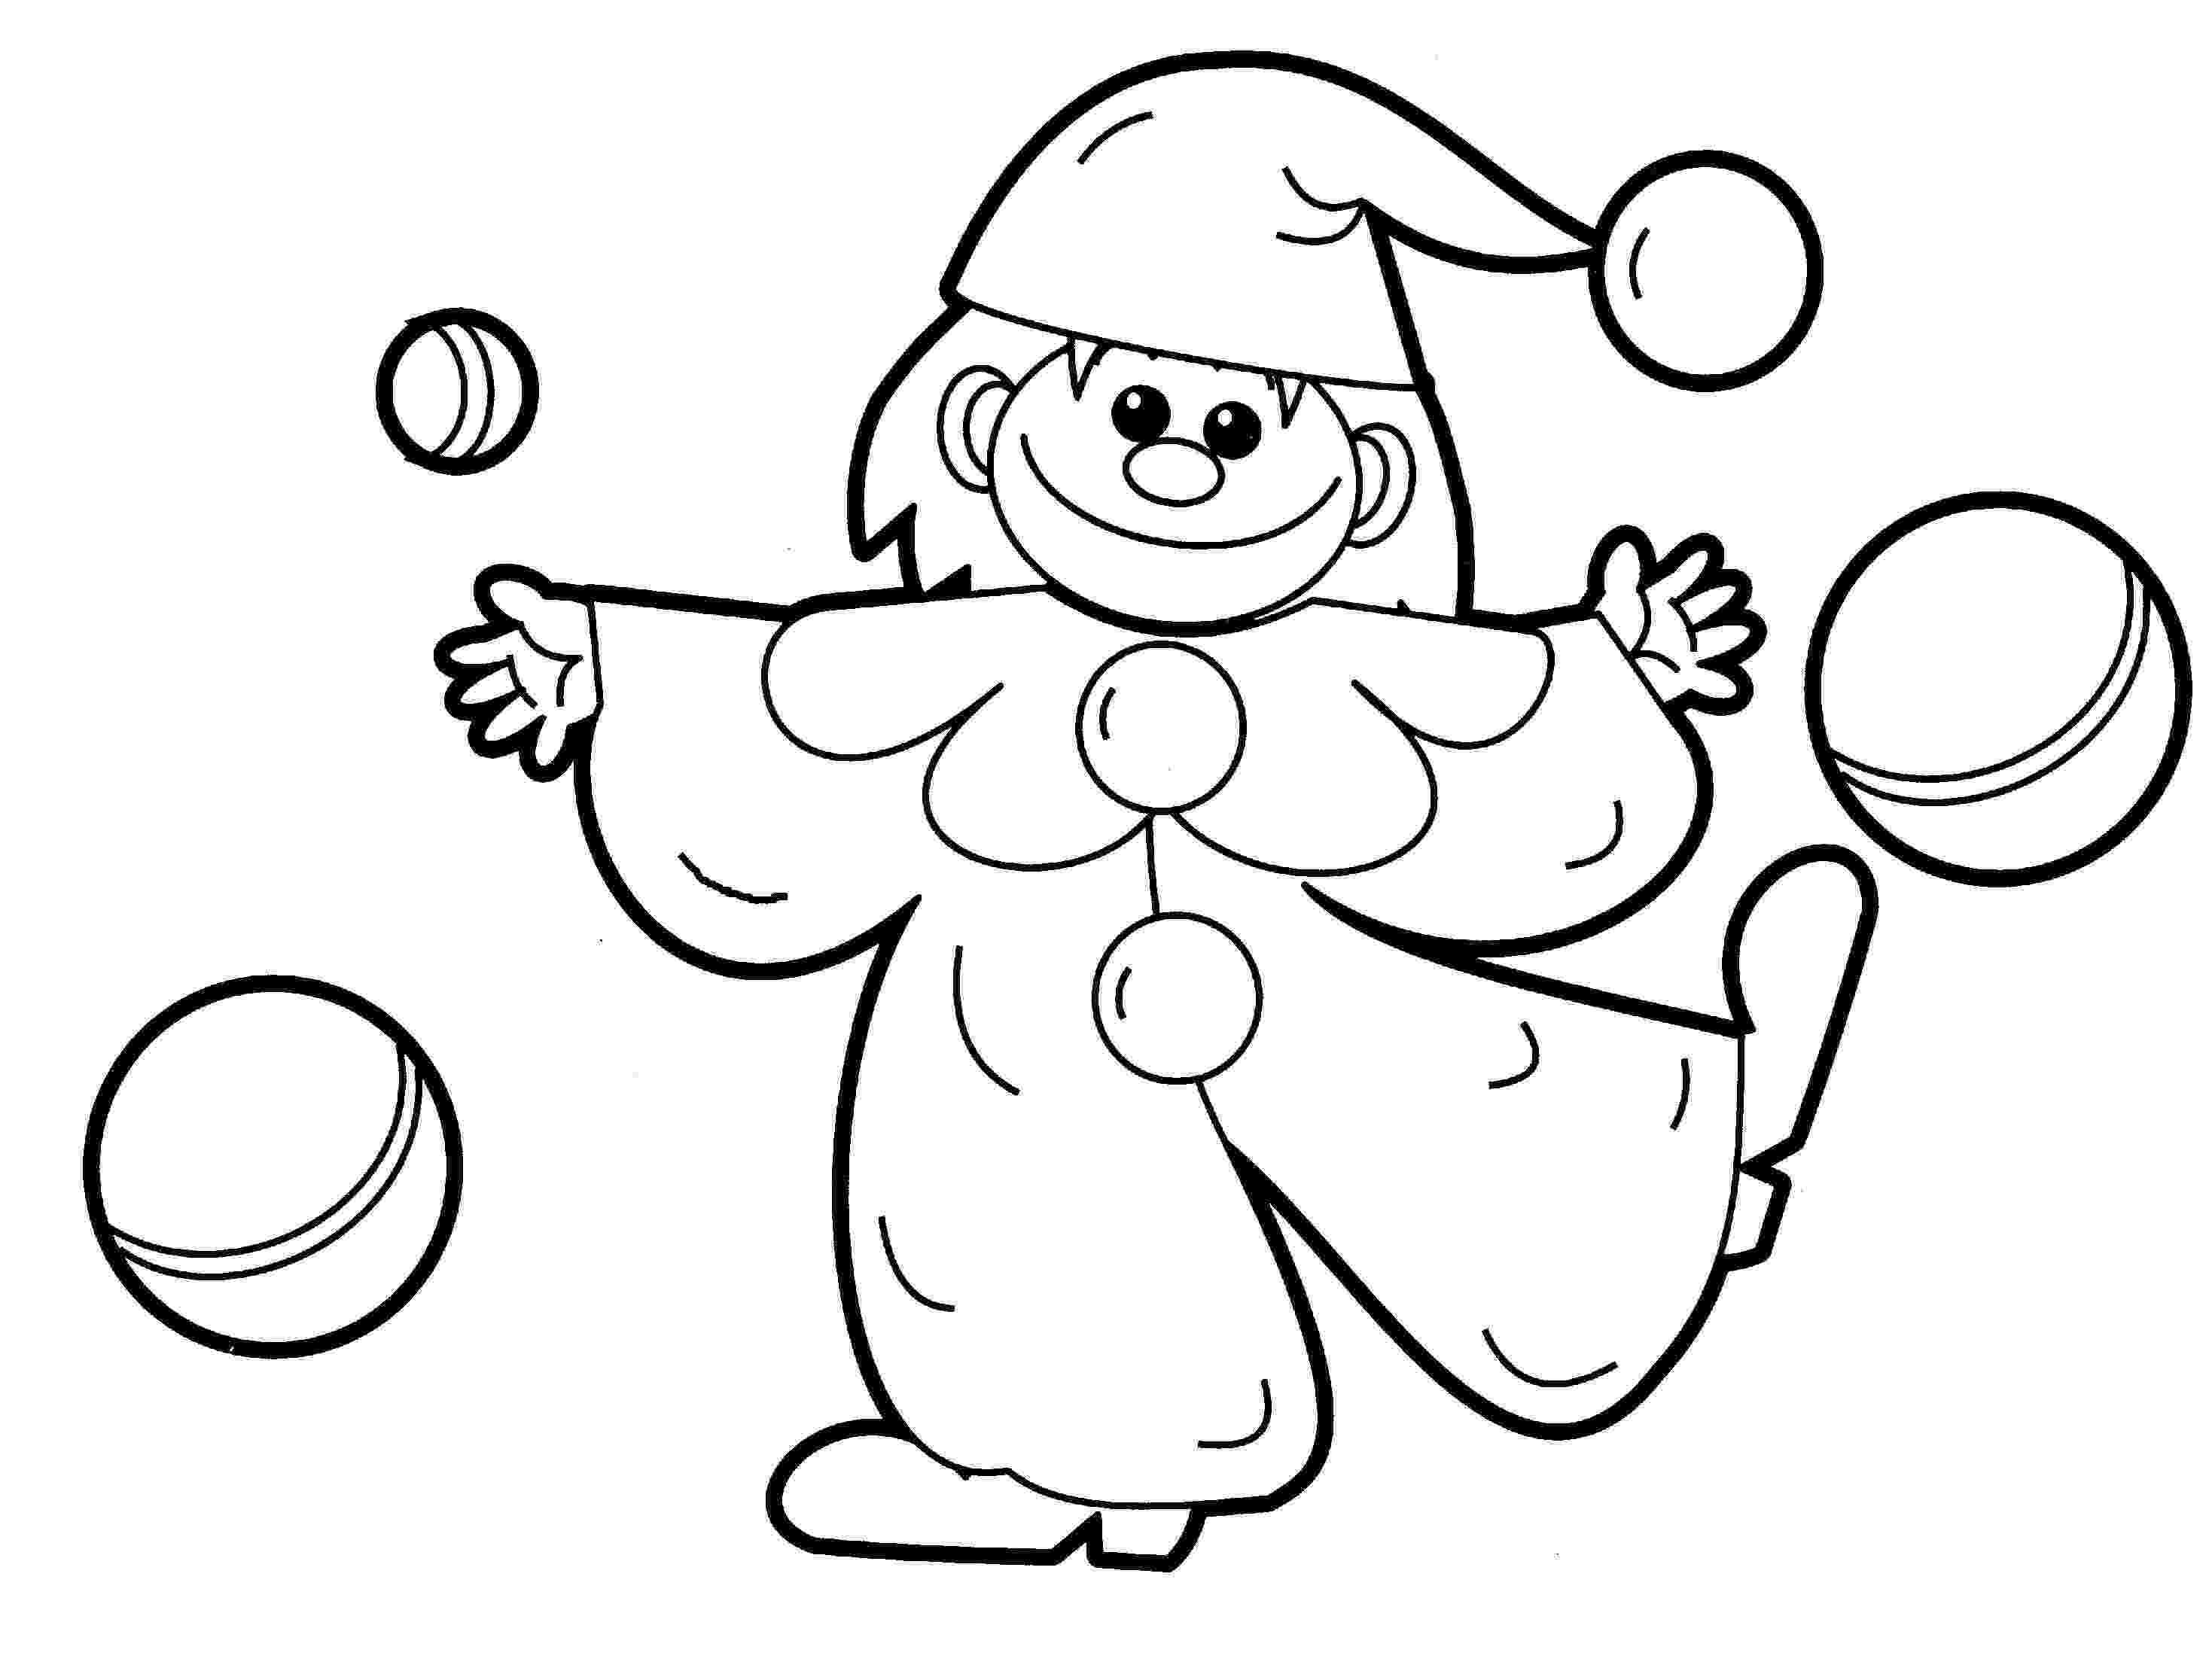 fun colouring pages for kids fun coloring pages for kids coloring pages for kids pages kids for colouring fun